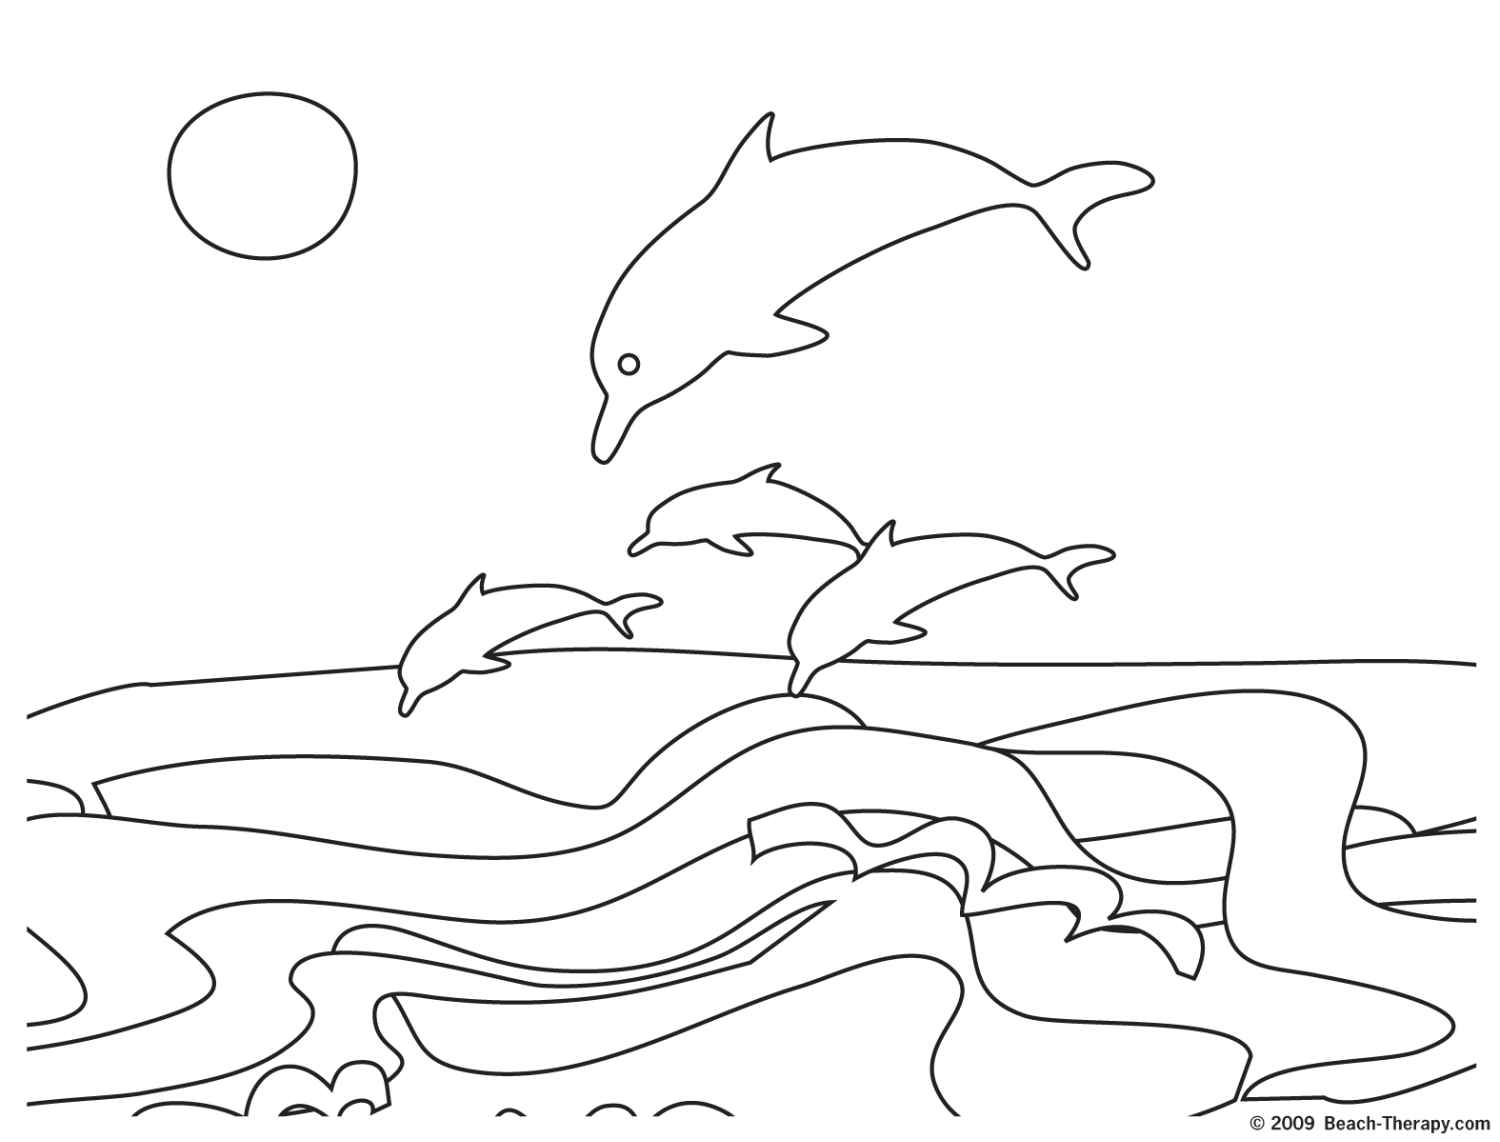 sunset coloring pages sunset coloring pages to download and print for free sunset coloring pages